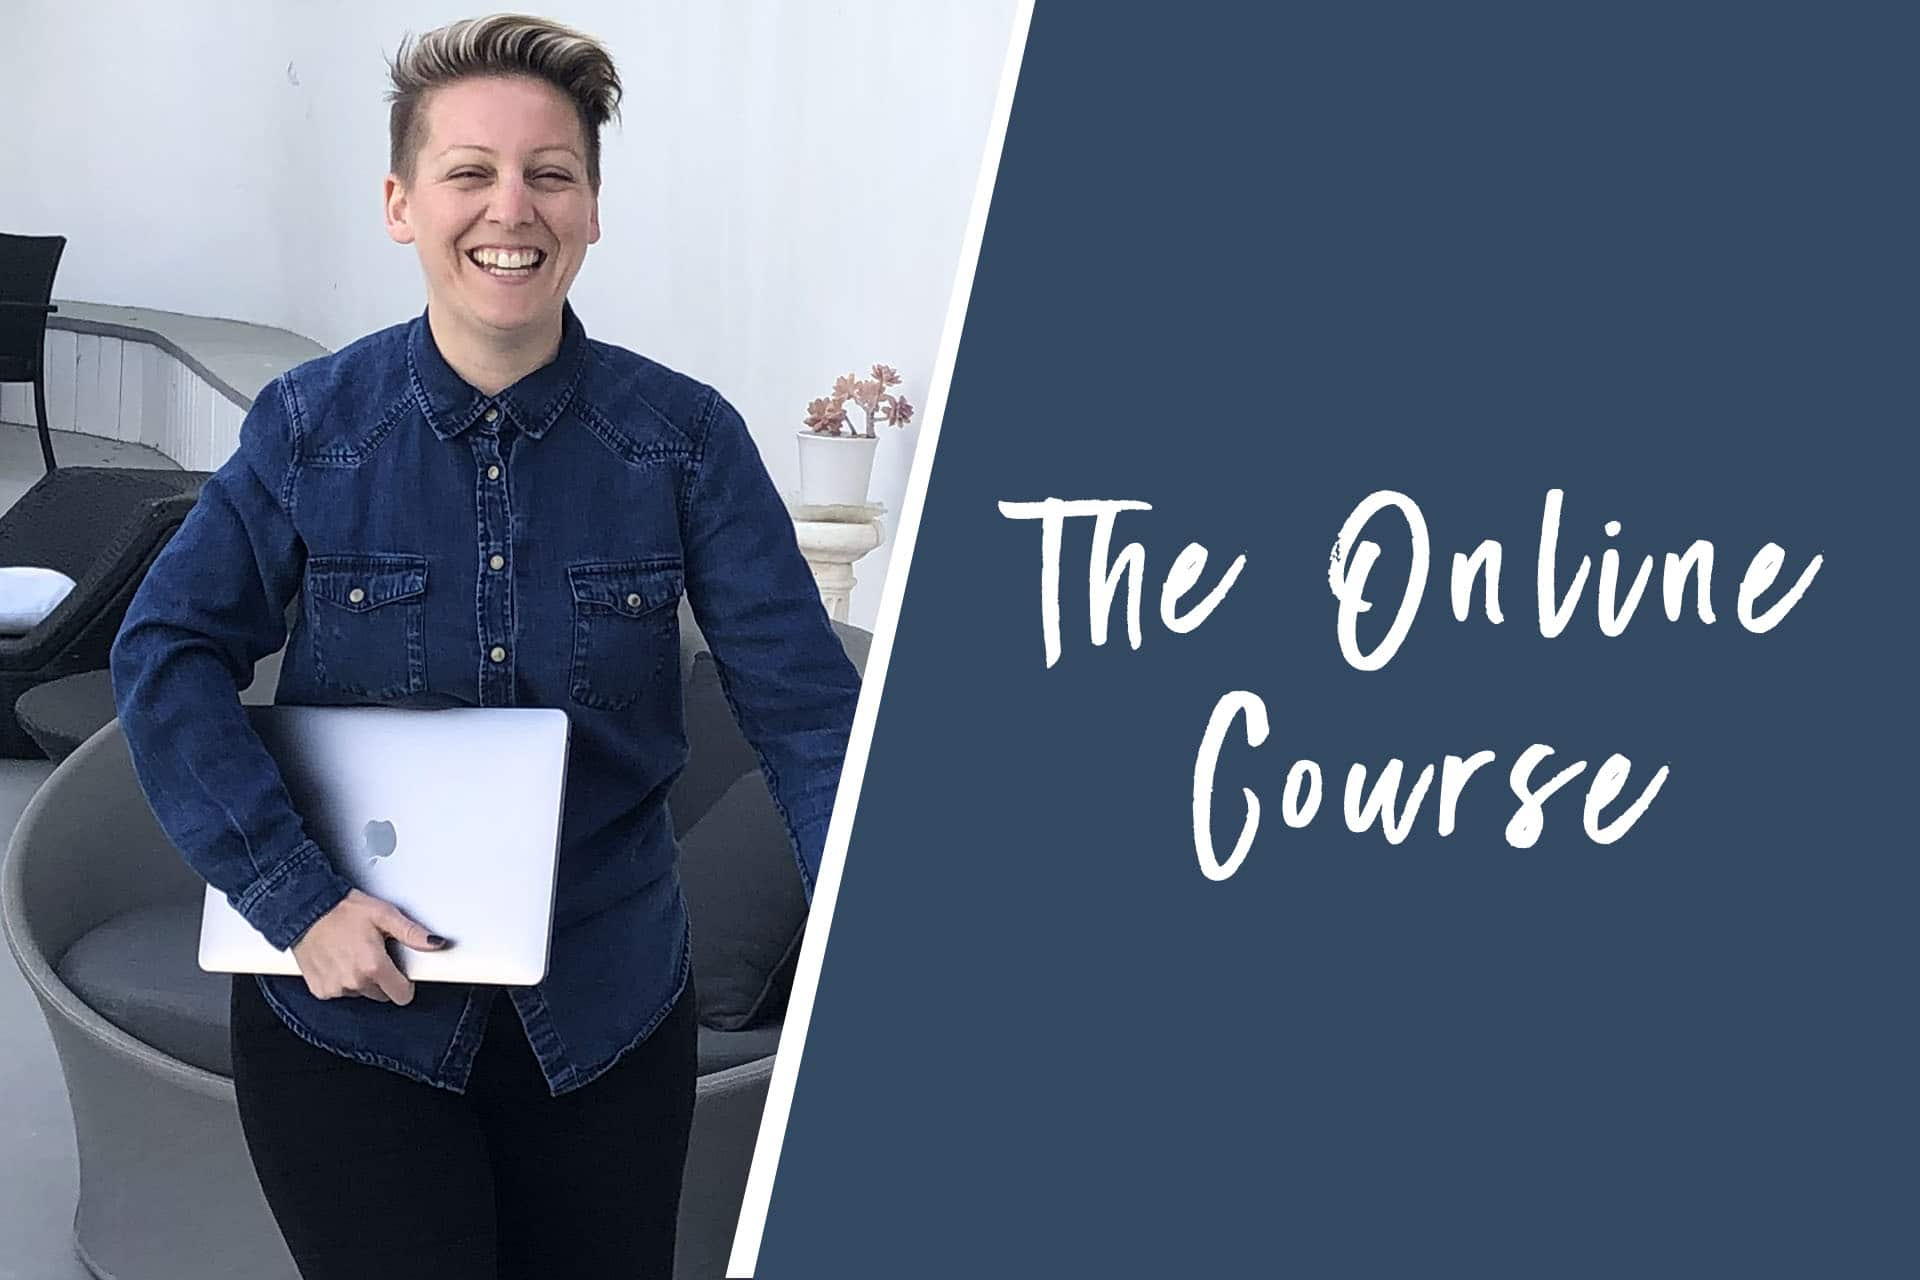 The online course